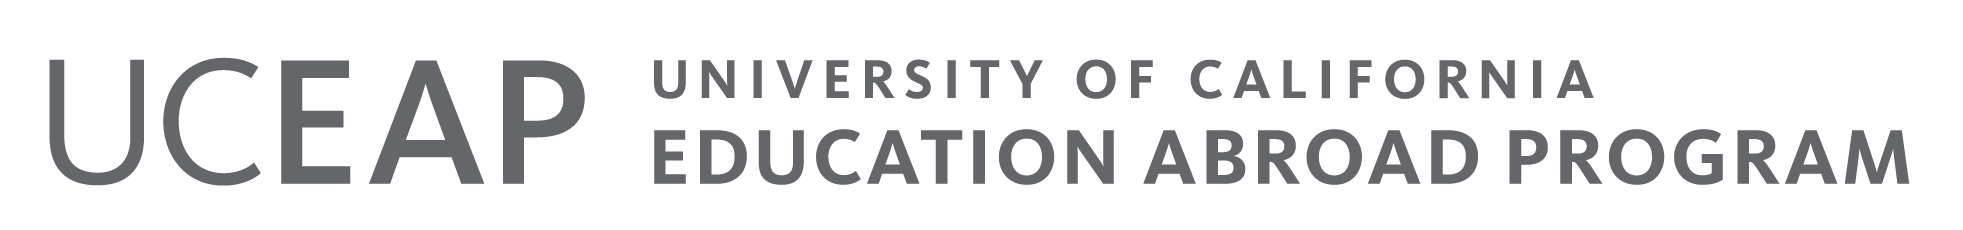 Logo for University of California Education Abroad Program